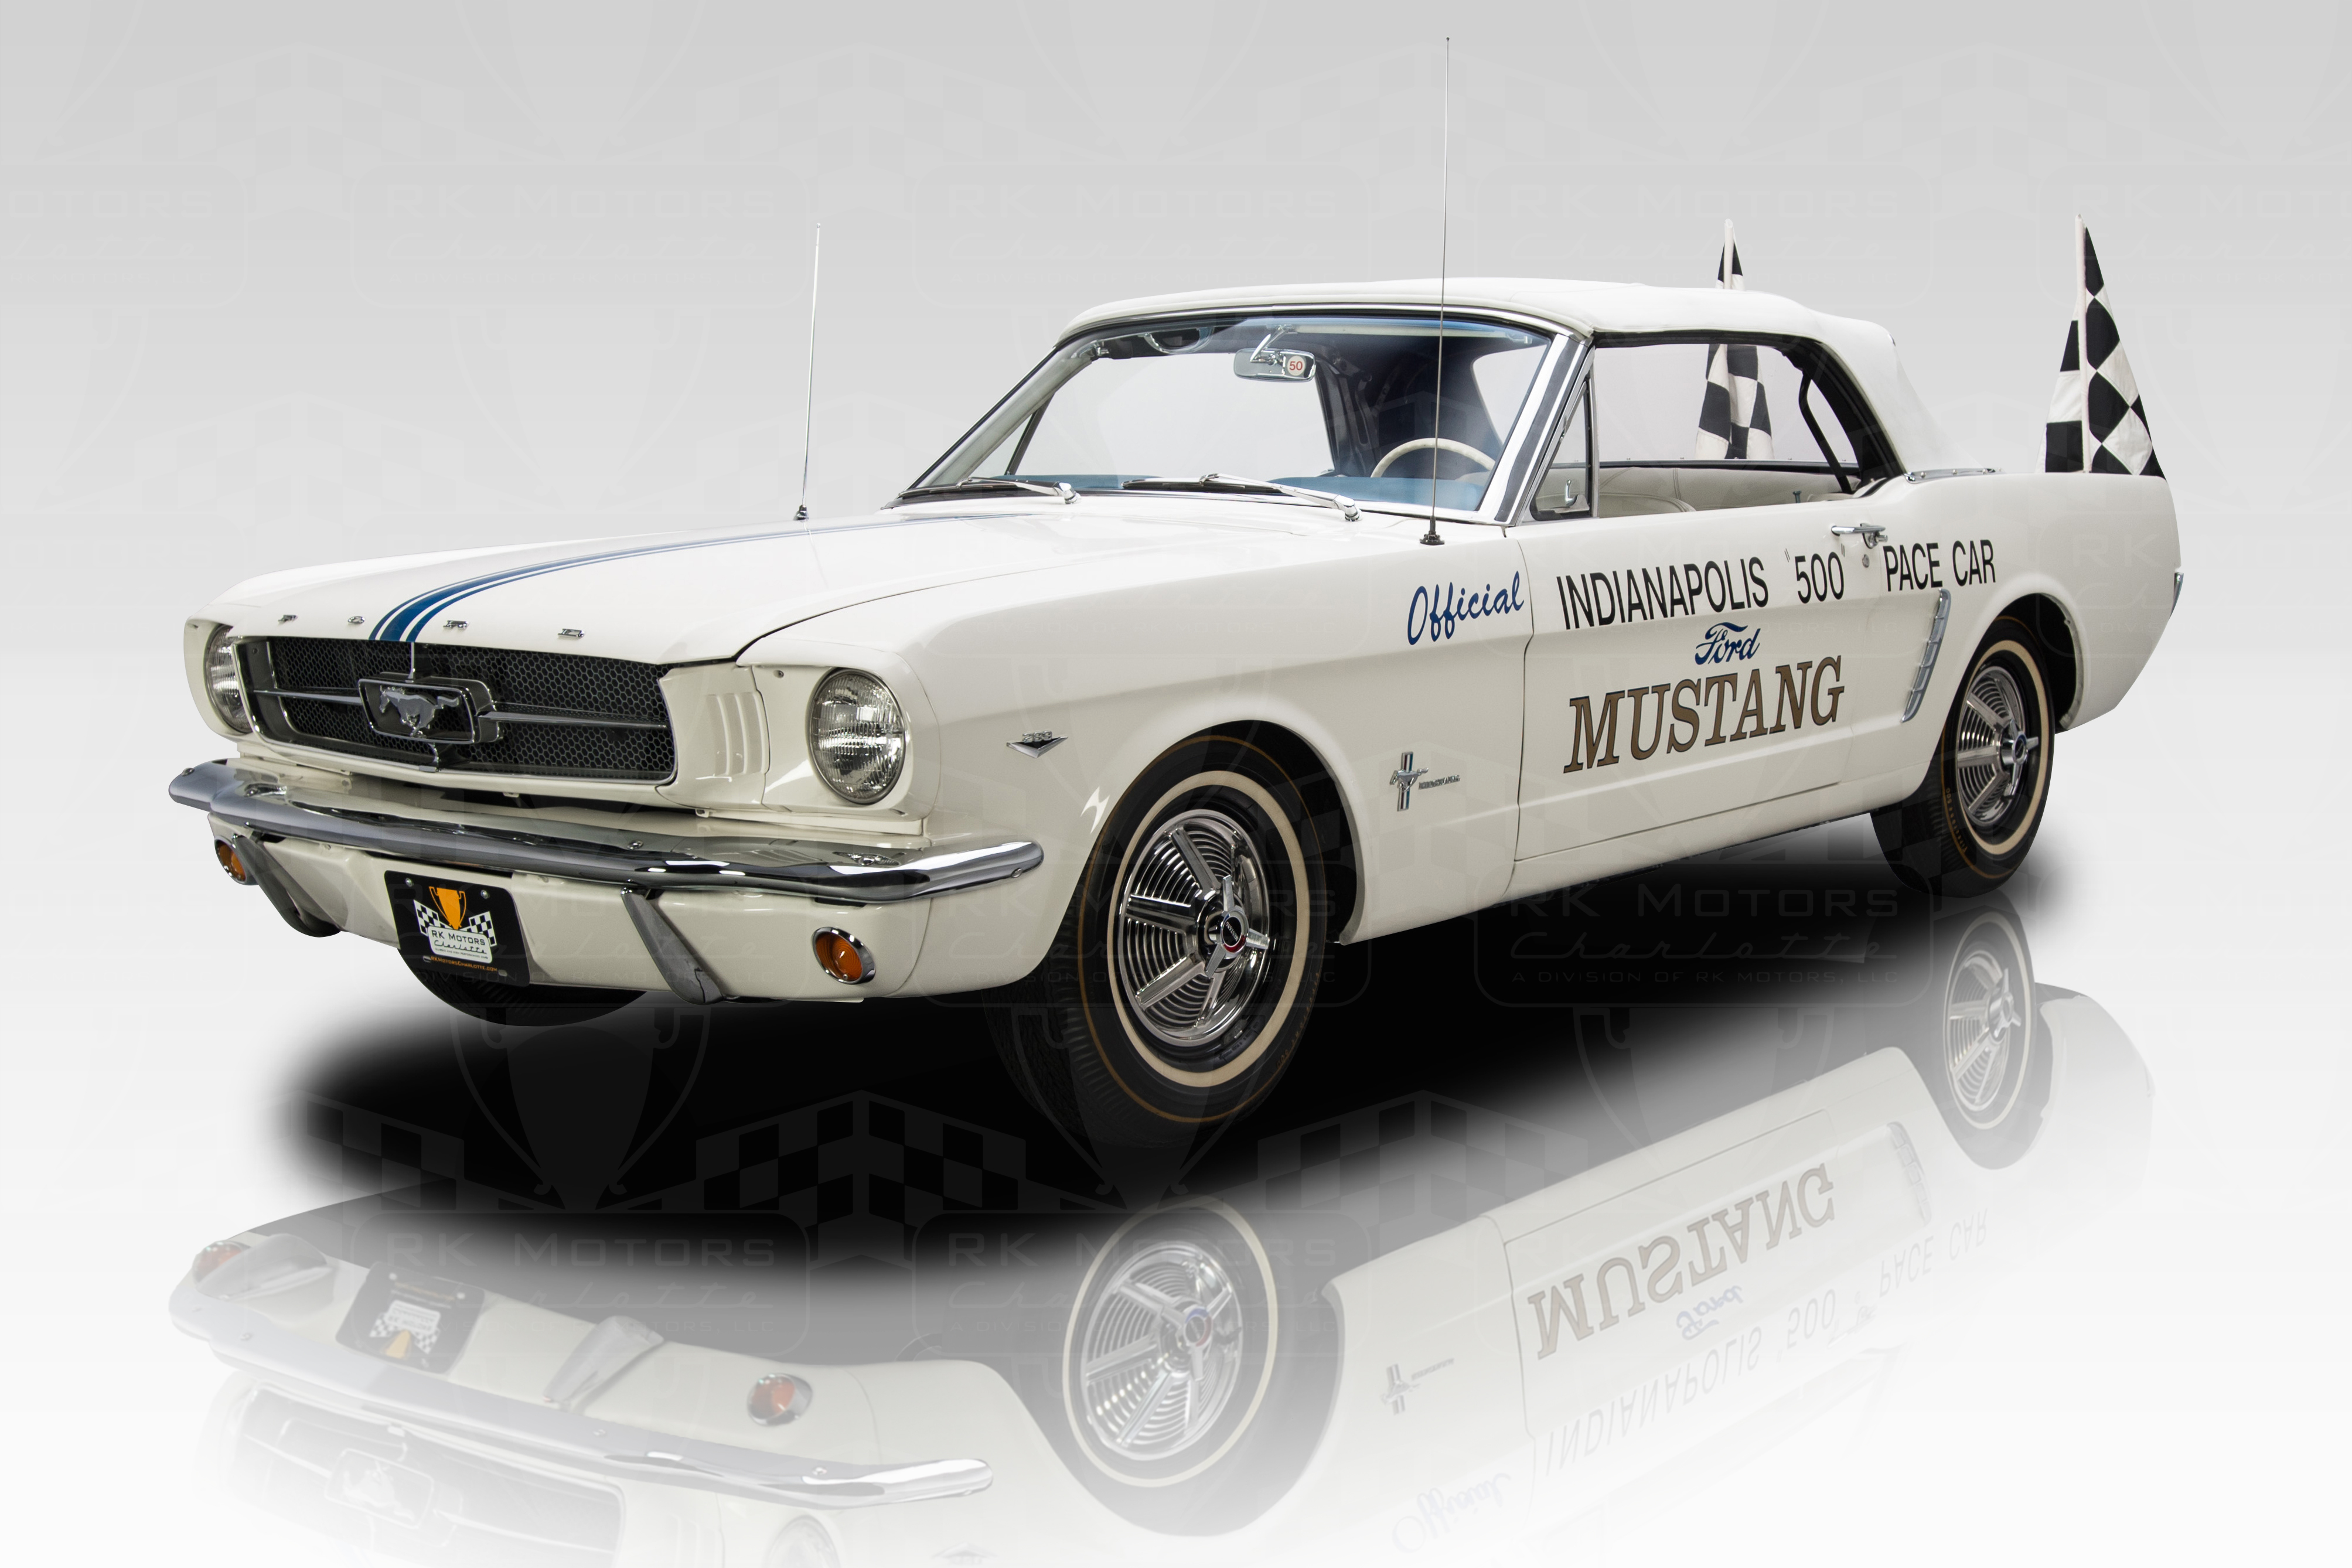 Ford Mustang Indianapolis 500 Pace Car Selling For 1 1m